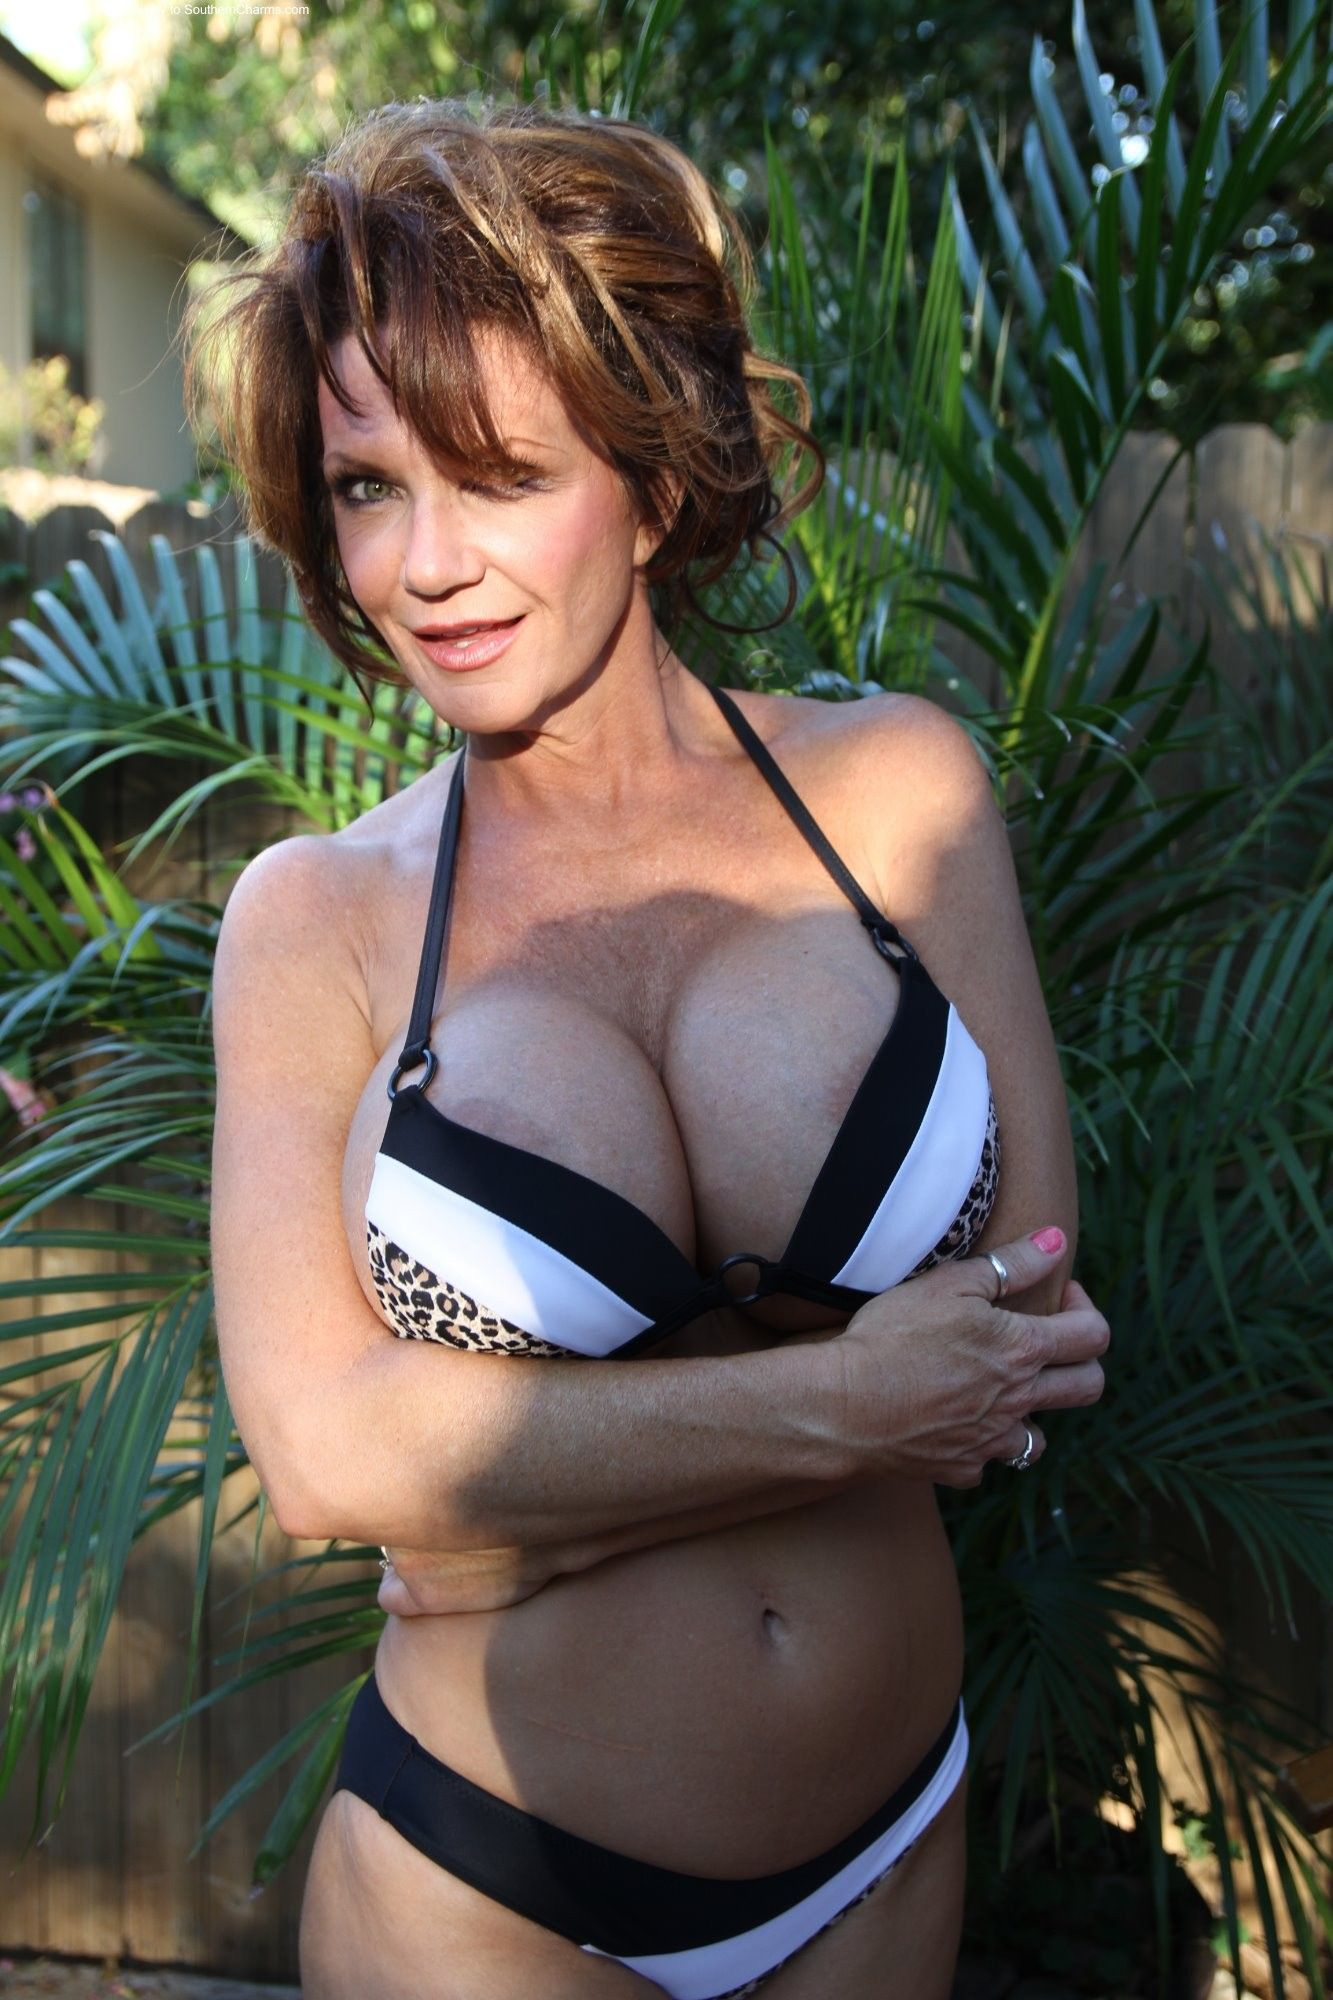 Mature pornstar Deauxma presents her awesome-looking big boobies № 597541 бесплатно